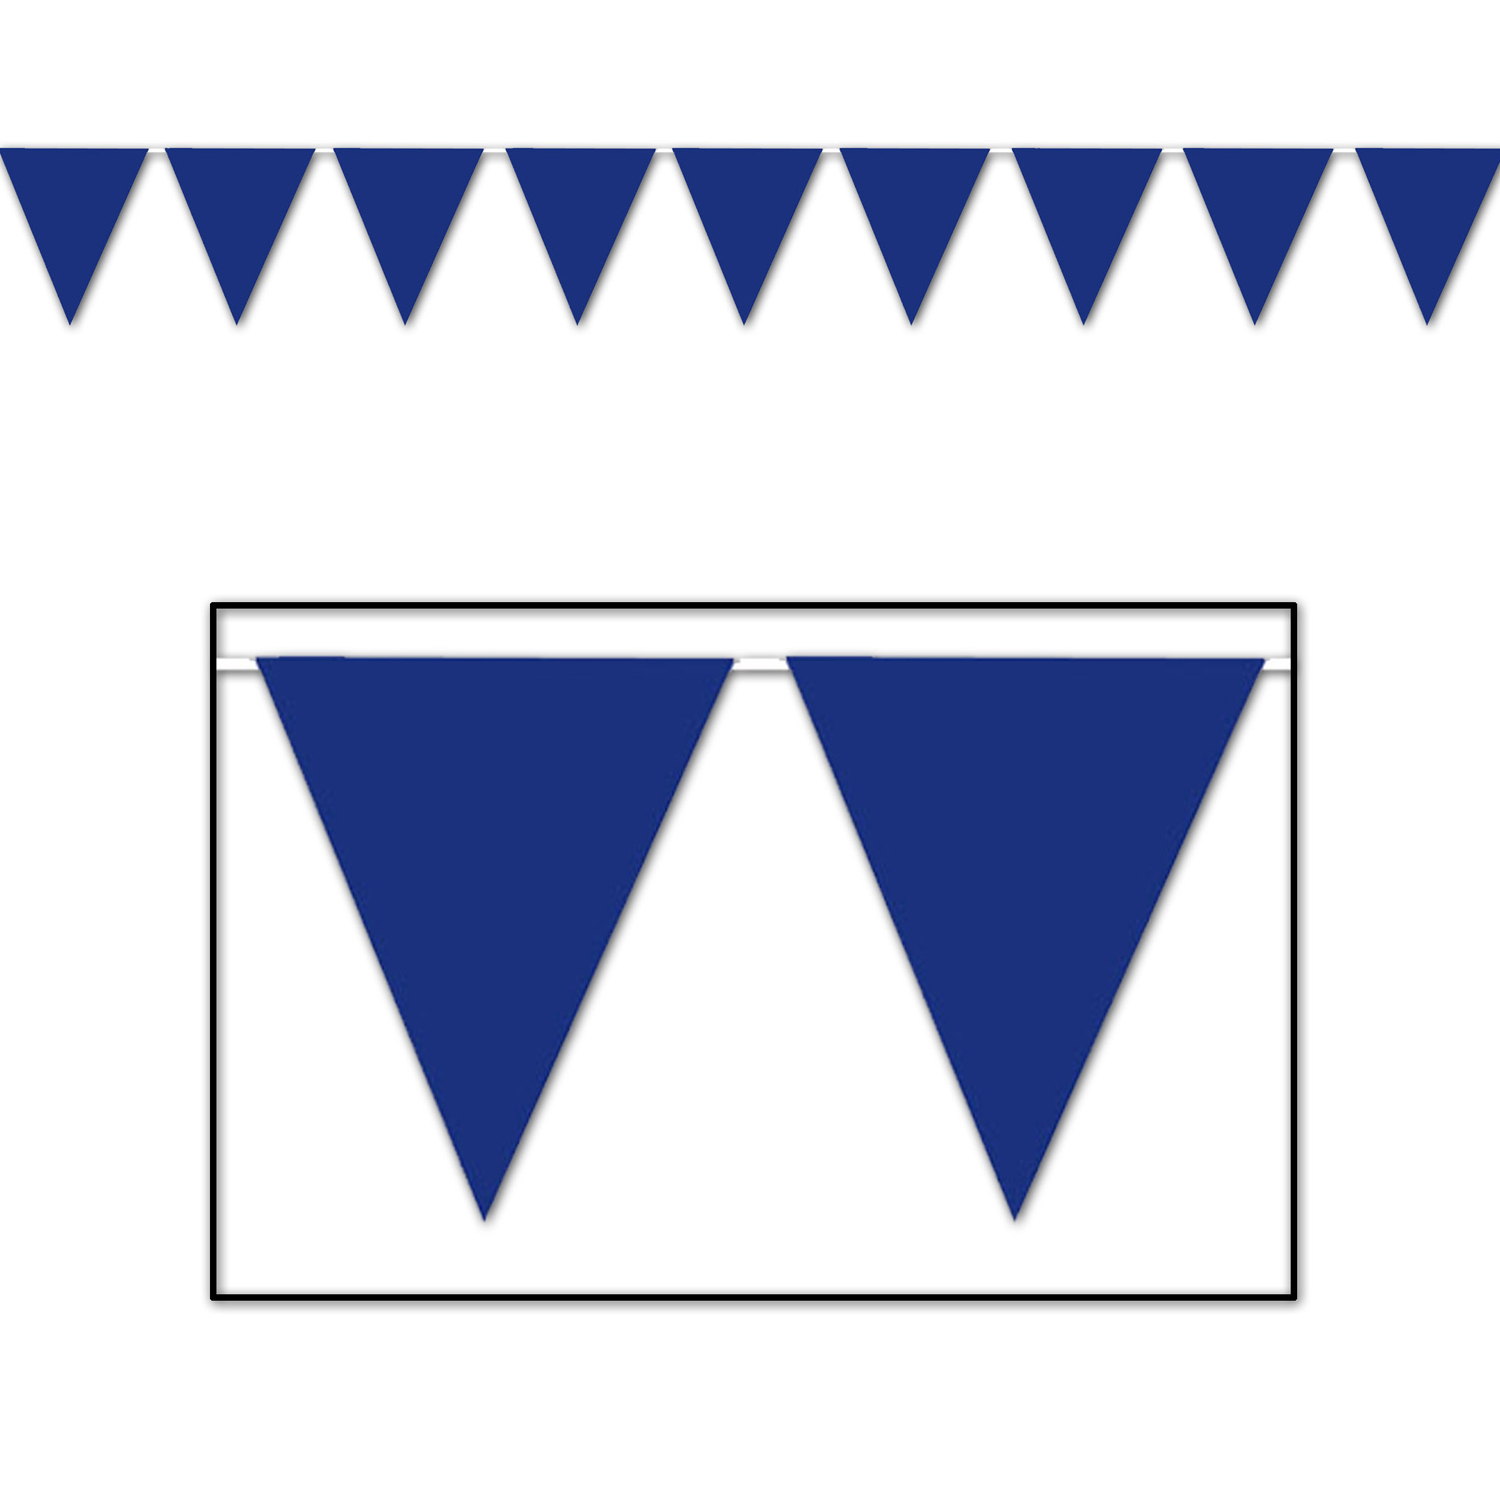 Blue Pennant Banner (Pack of 12) - image 1 de 1